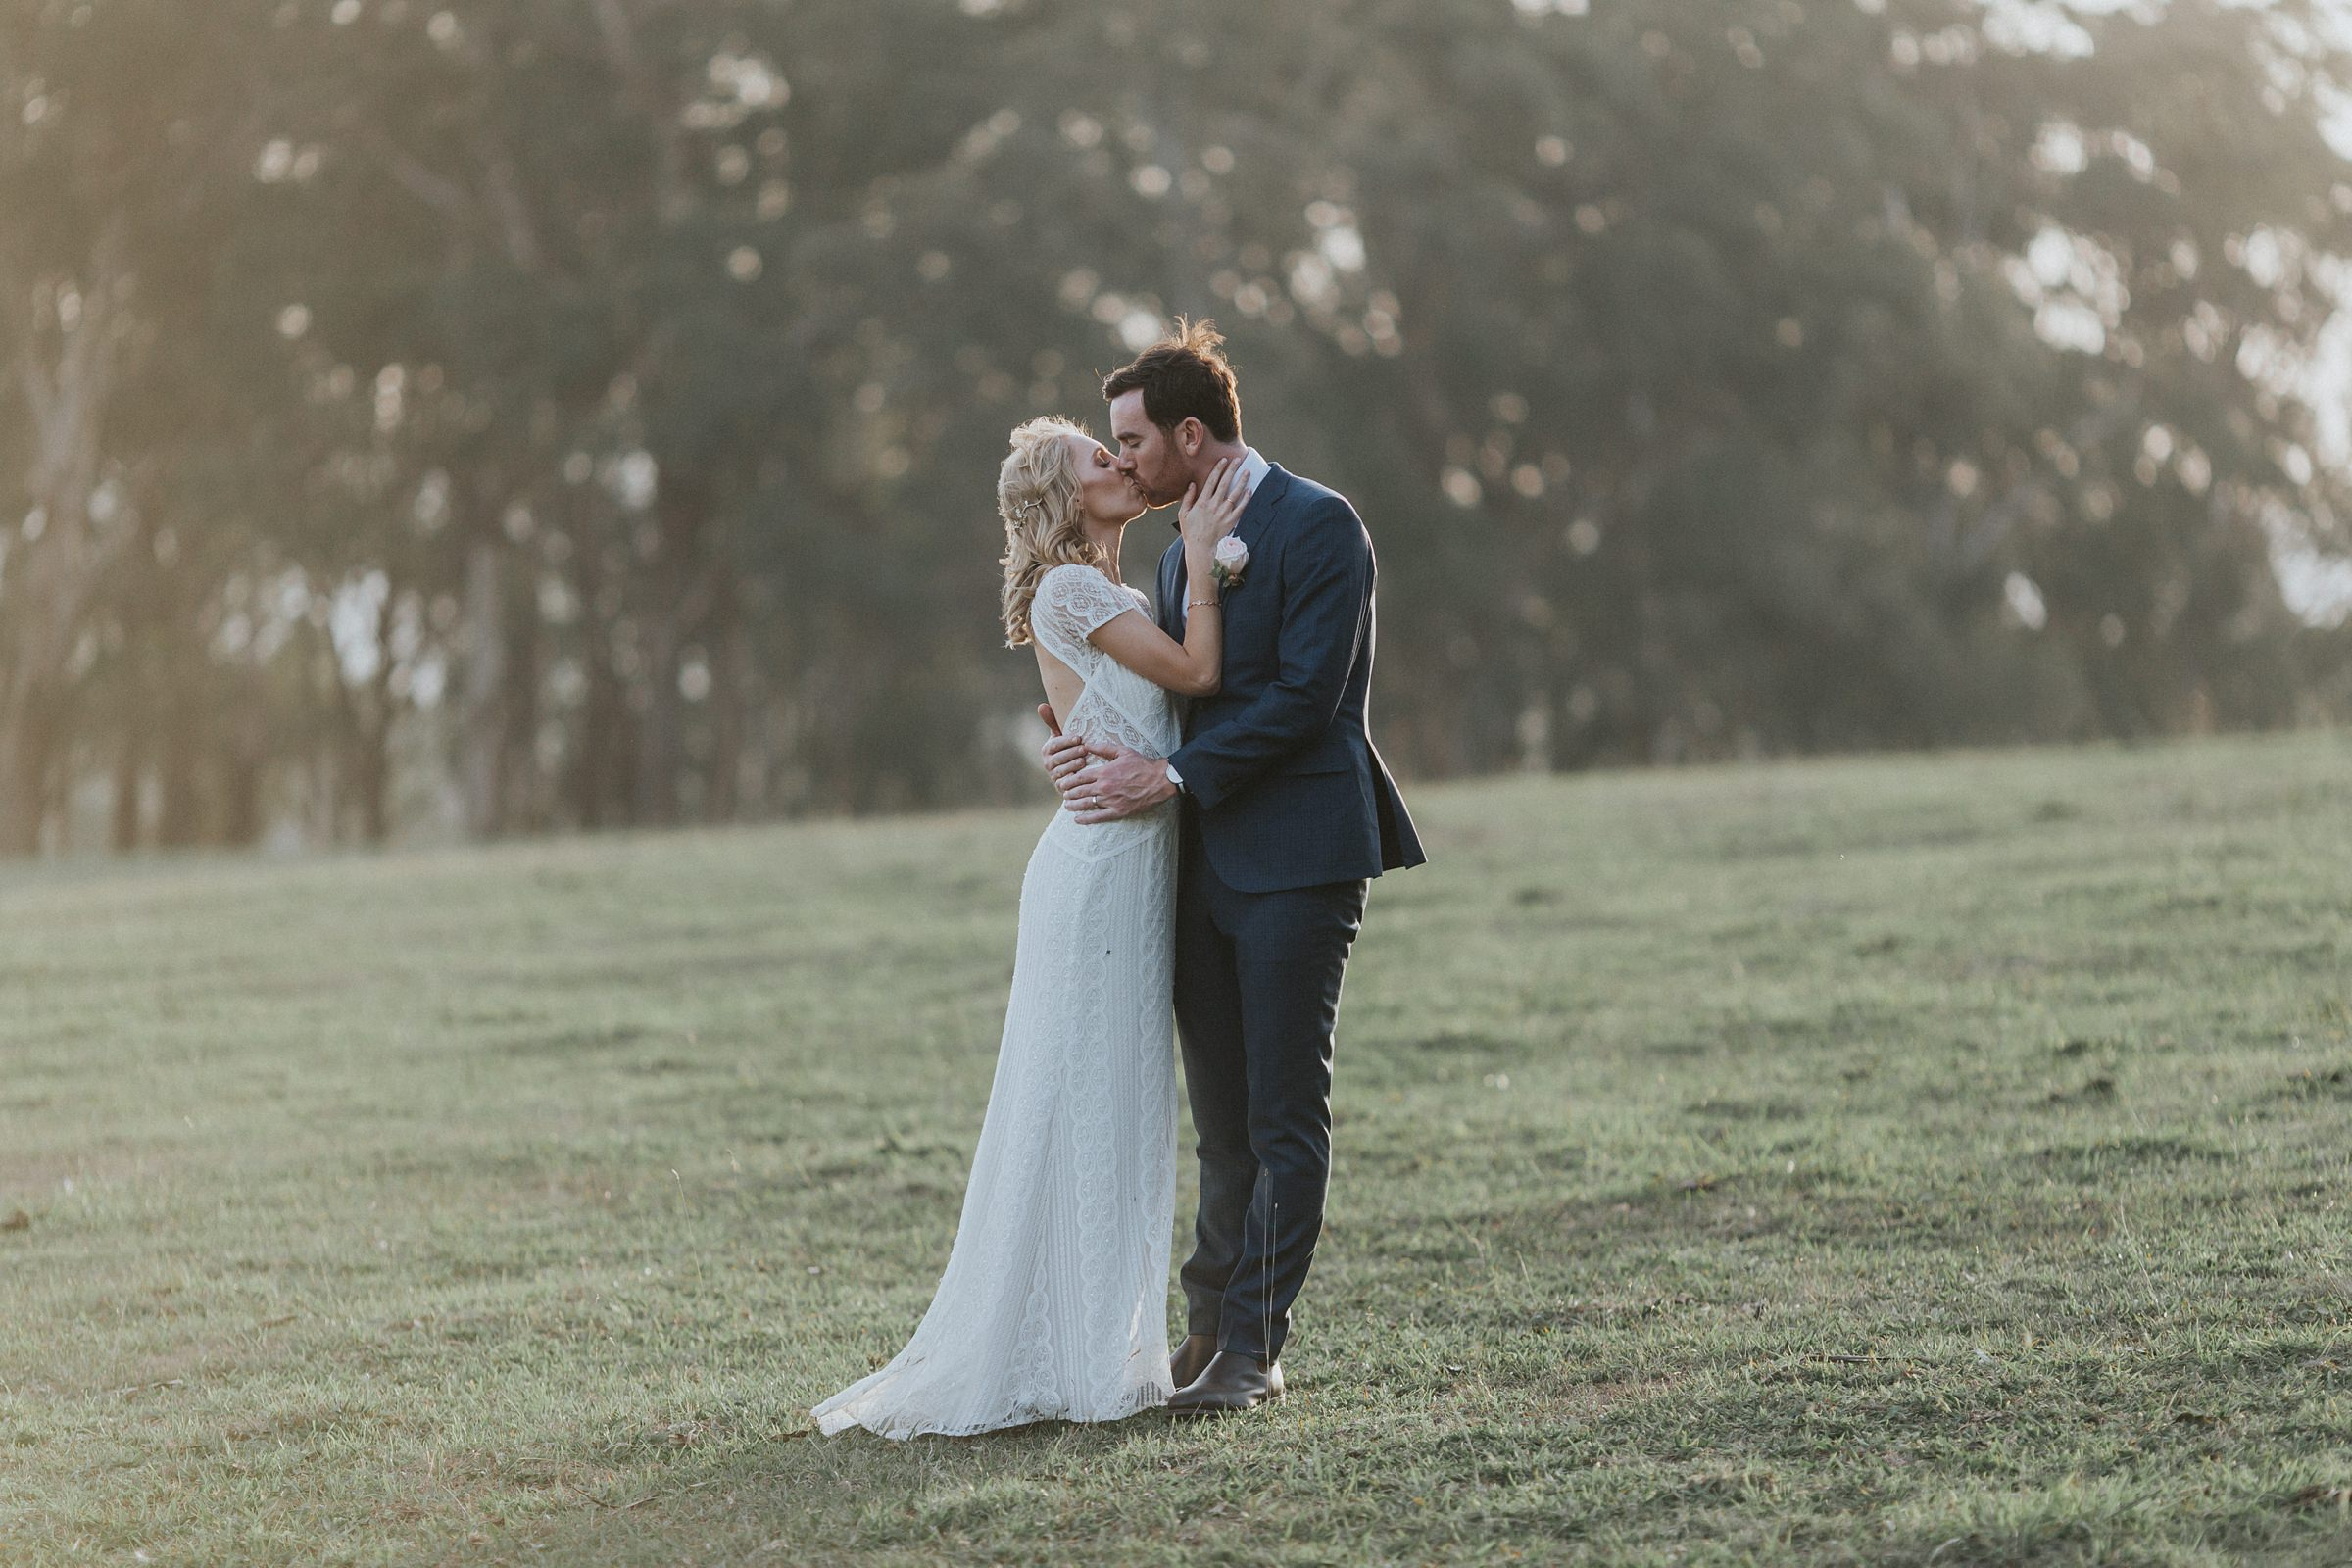 passionate kiss for the bride and groom after getting married in the southern highlands